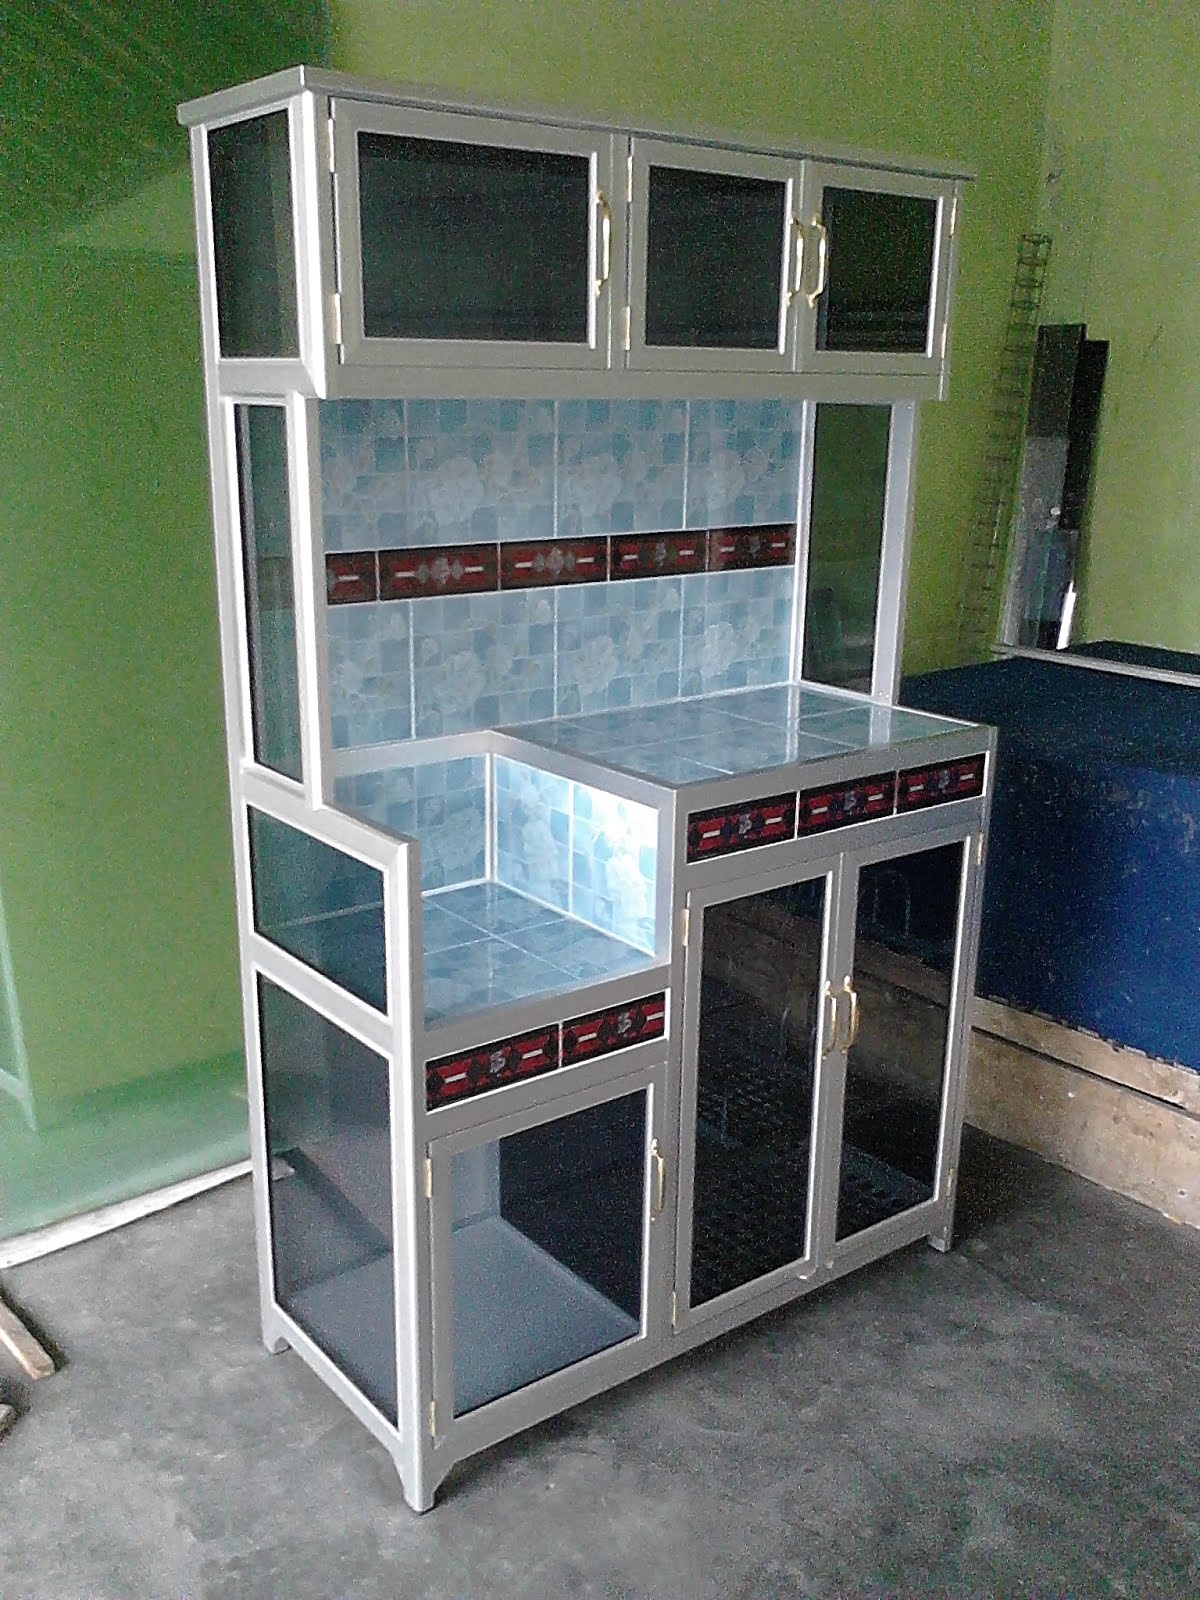 Harga kitchen set aluminium murah jual for Harga kitchen set aluminium